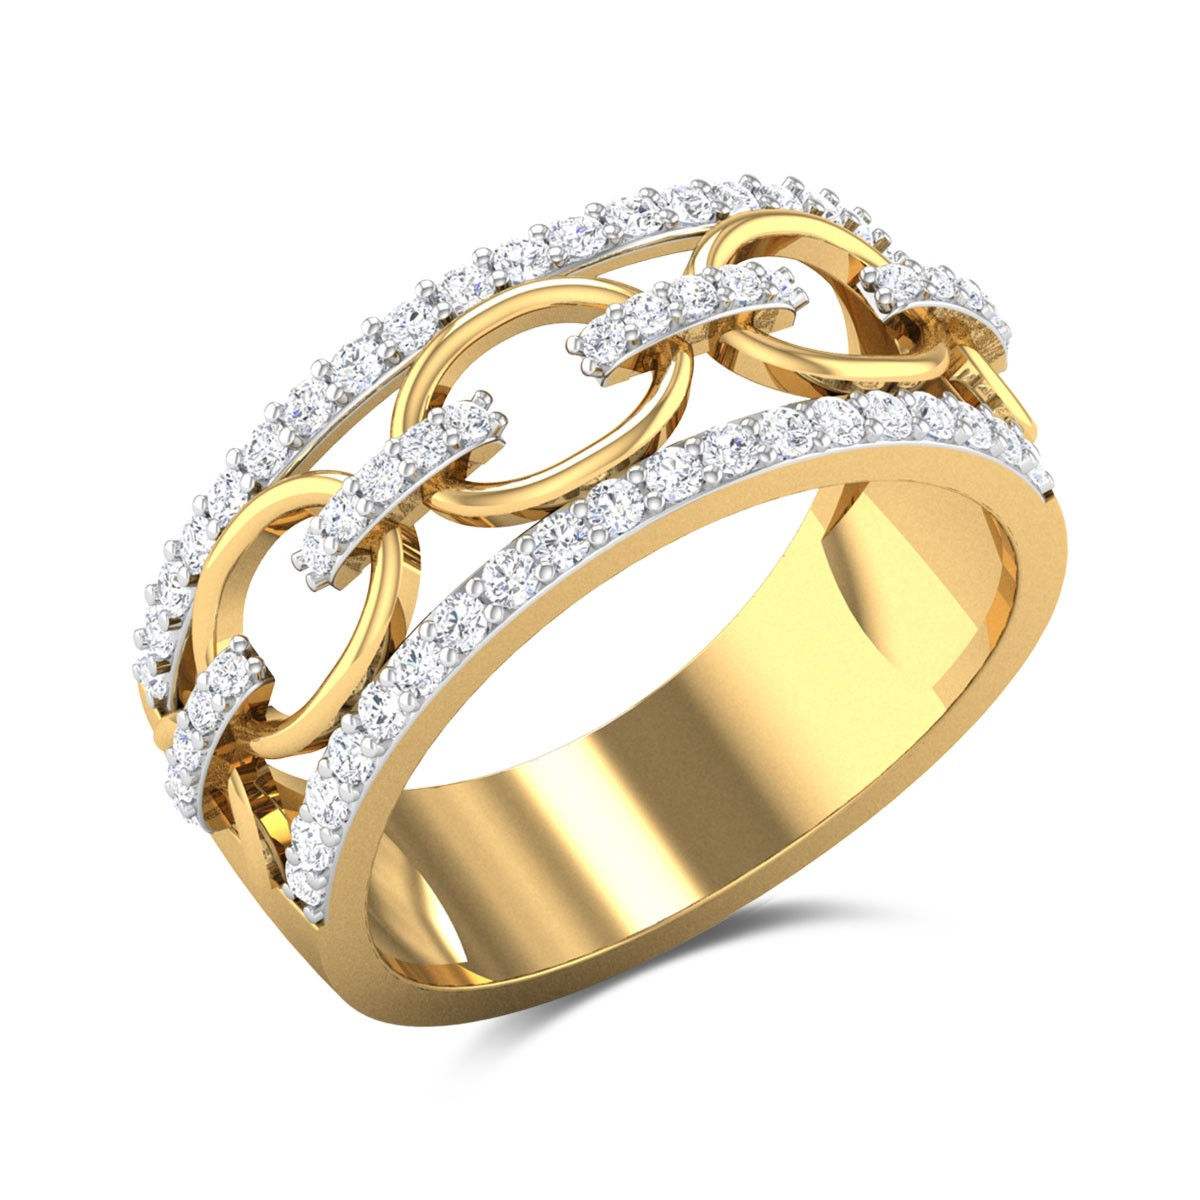 Interlock Betony Diamond Ring